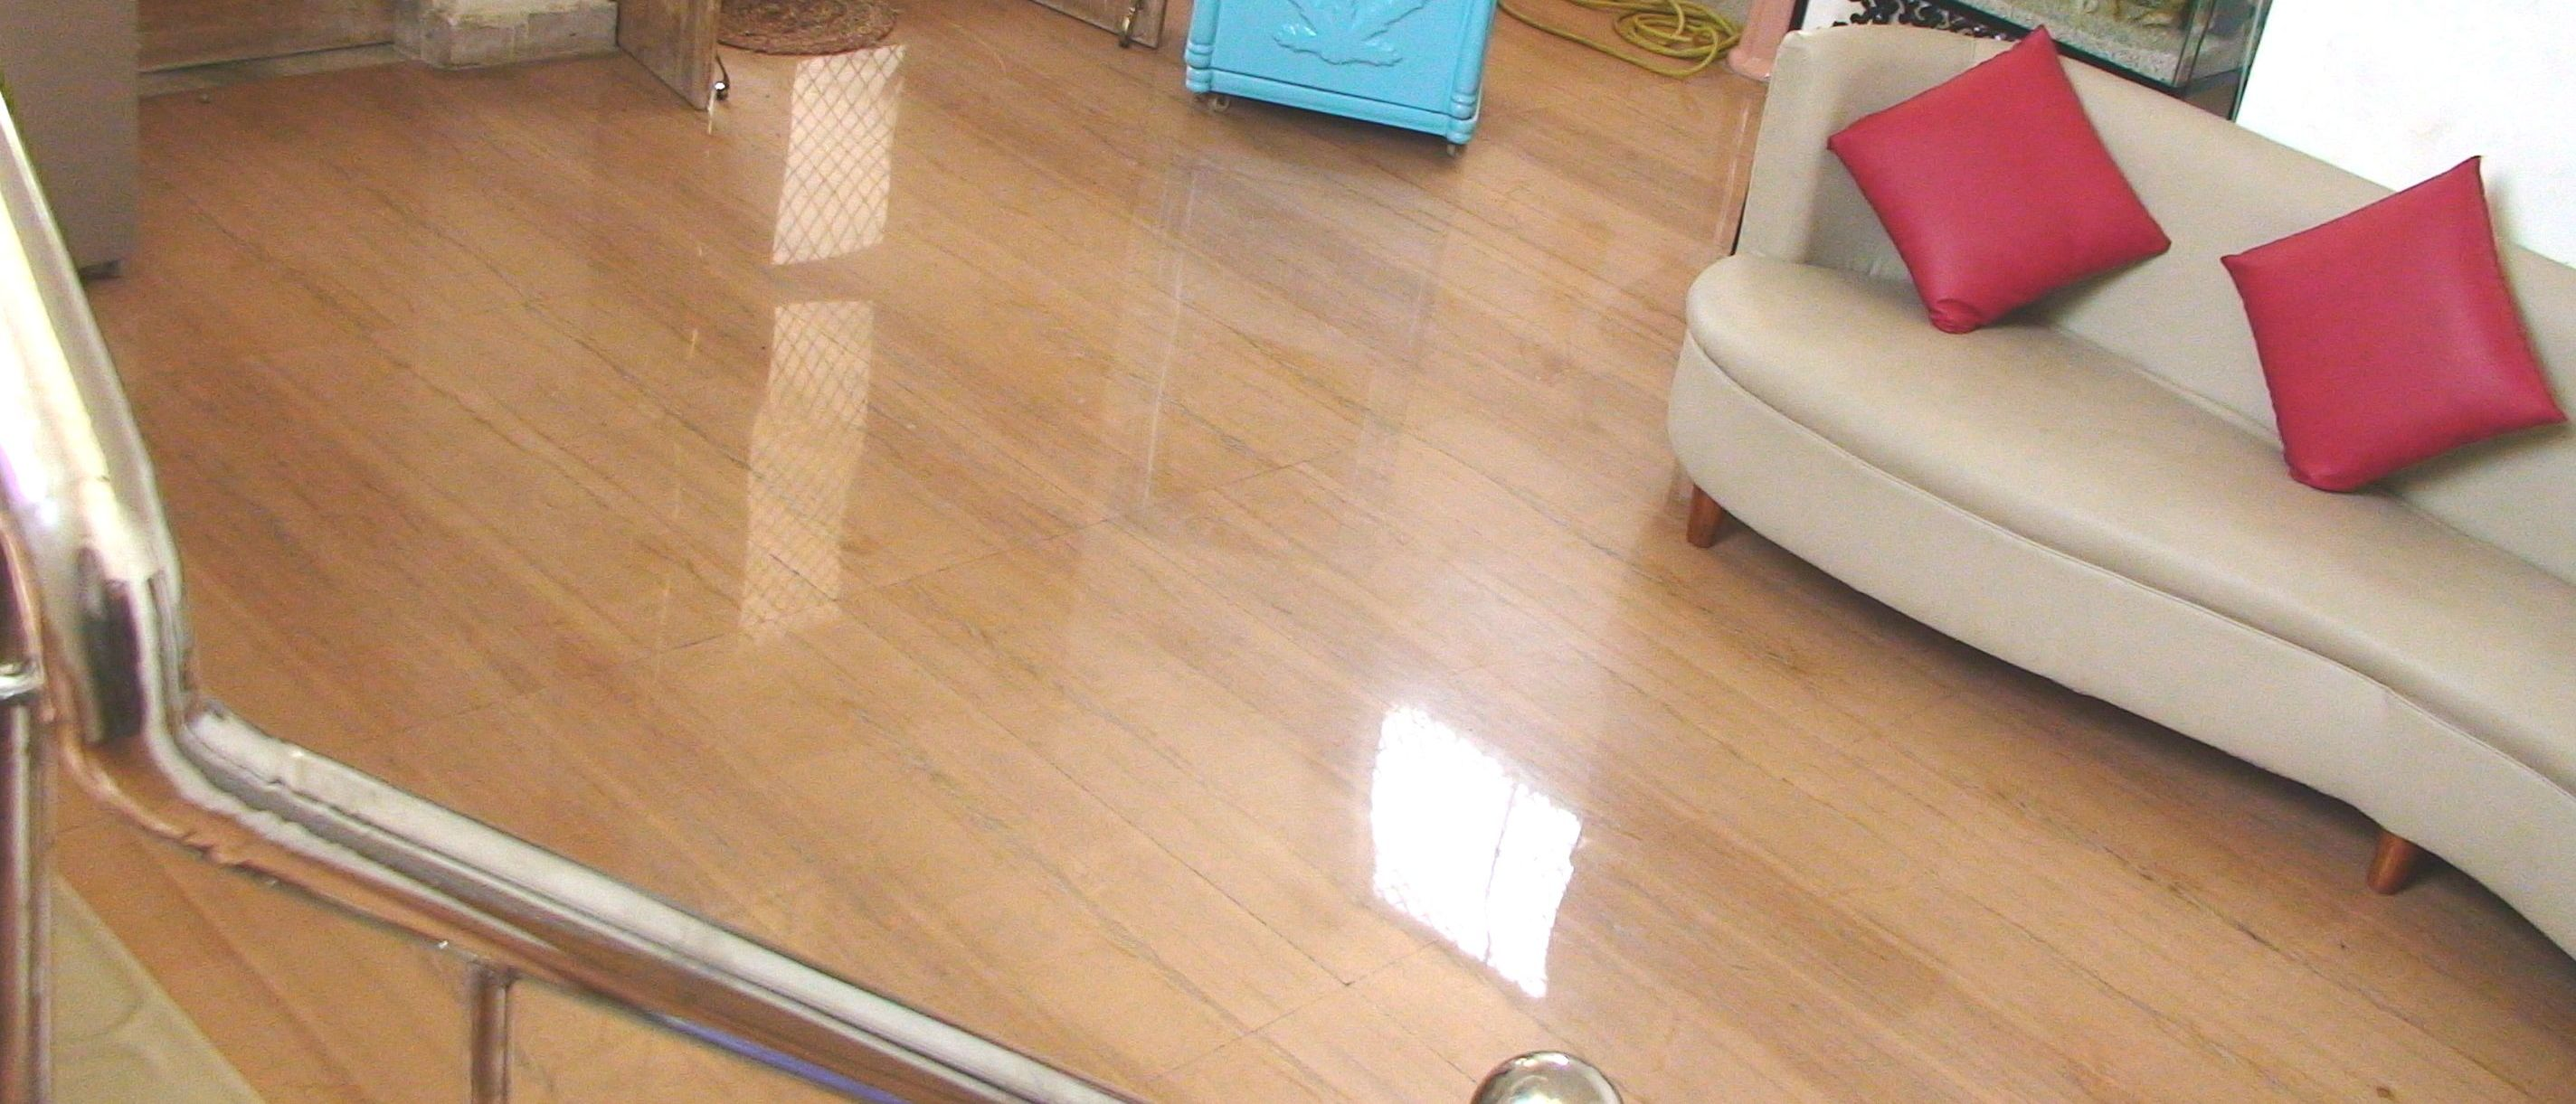 Polished Jodhpuri Sandstone Floor